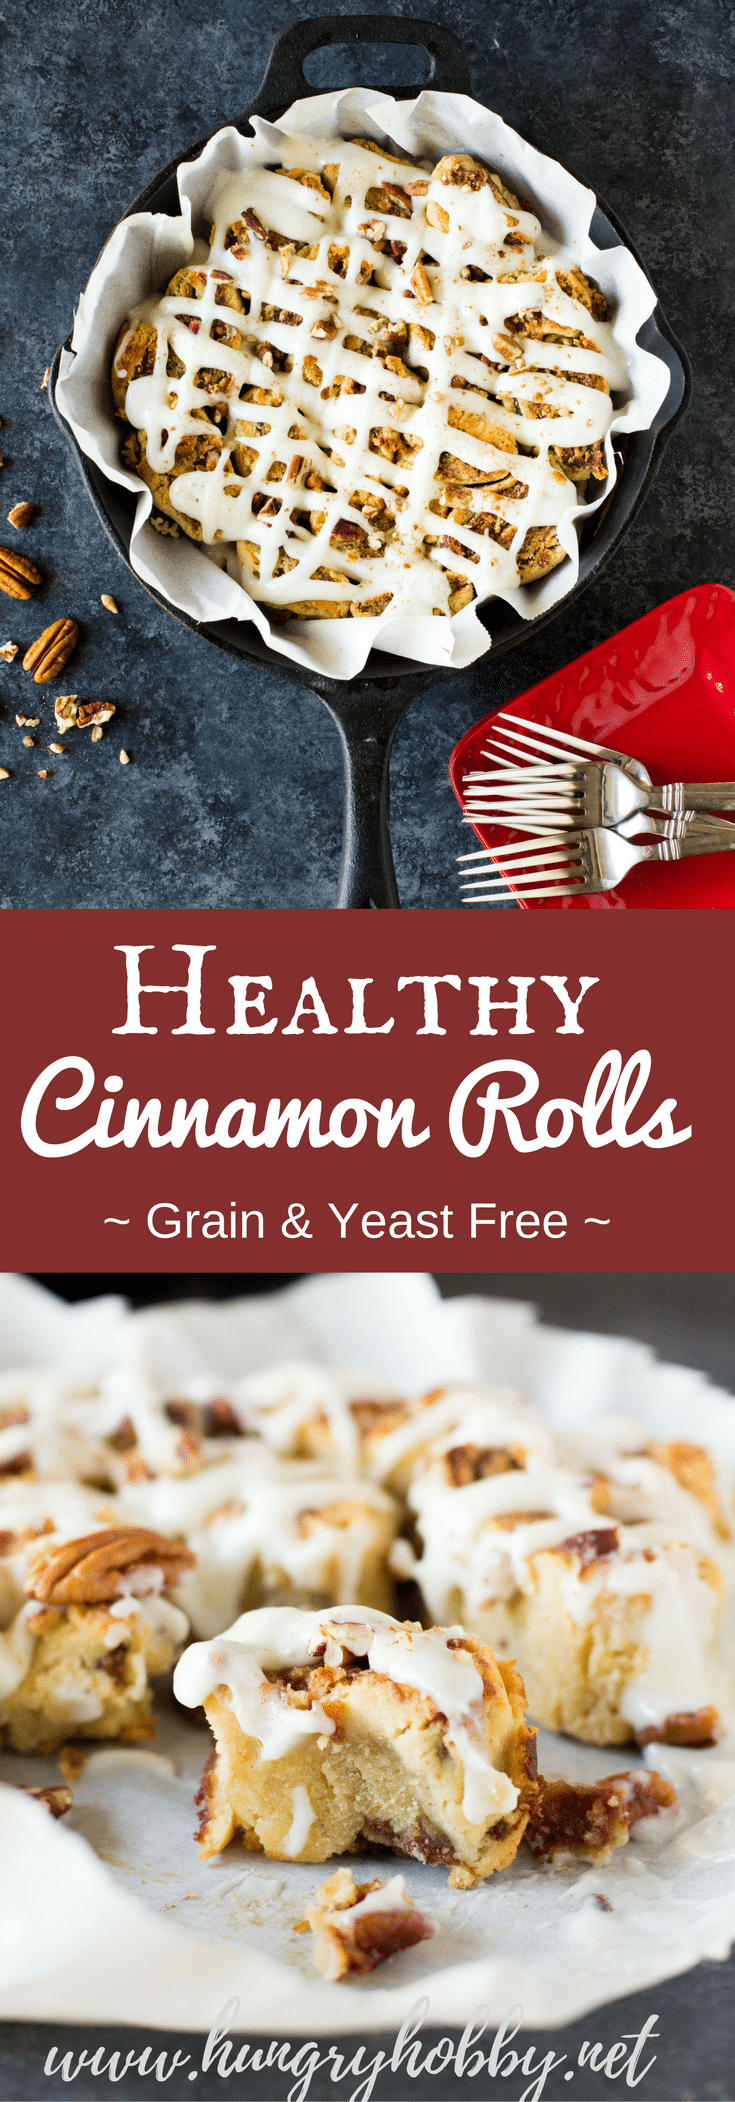 Healthy Cinnamon Rolls without yeast, refined grains, or refined sugar.  Doused with an optional greek yogurt cream cheese frosting!